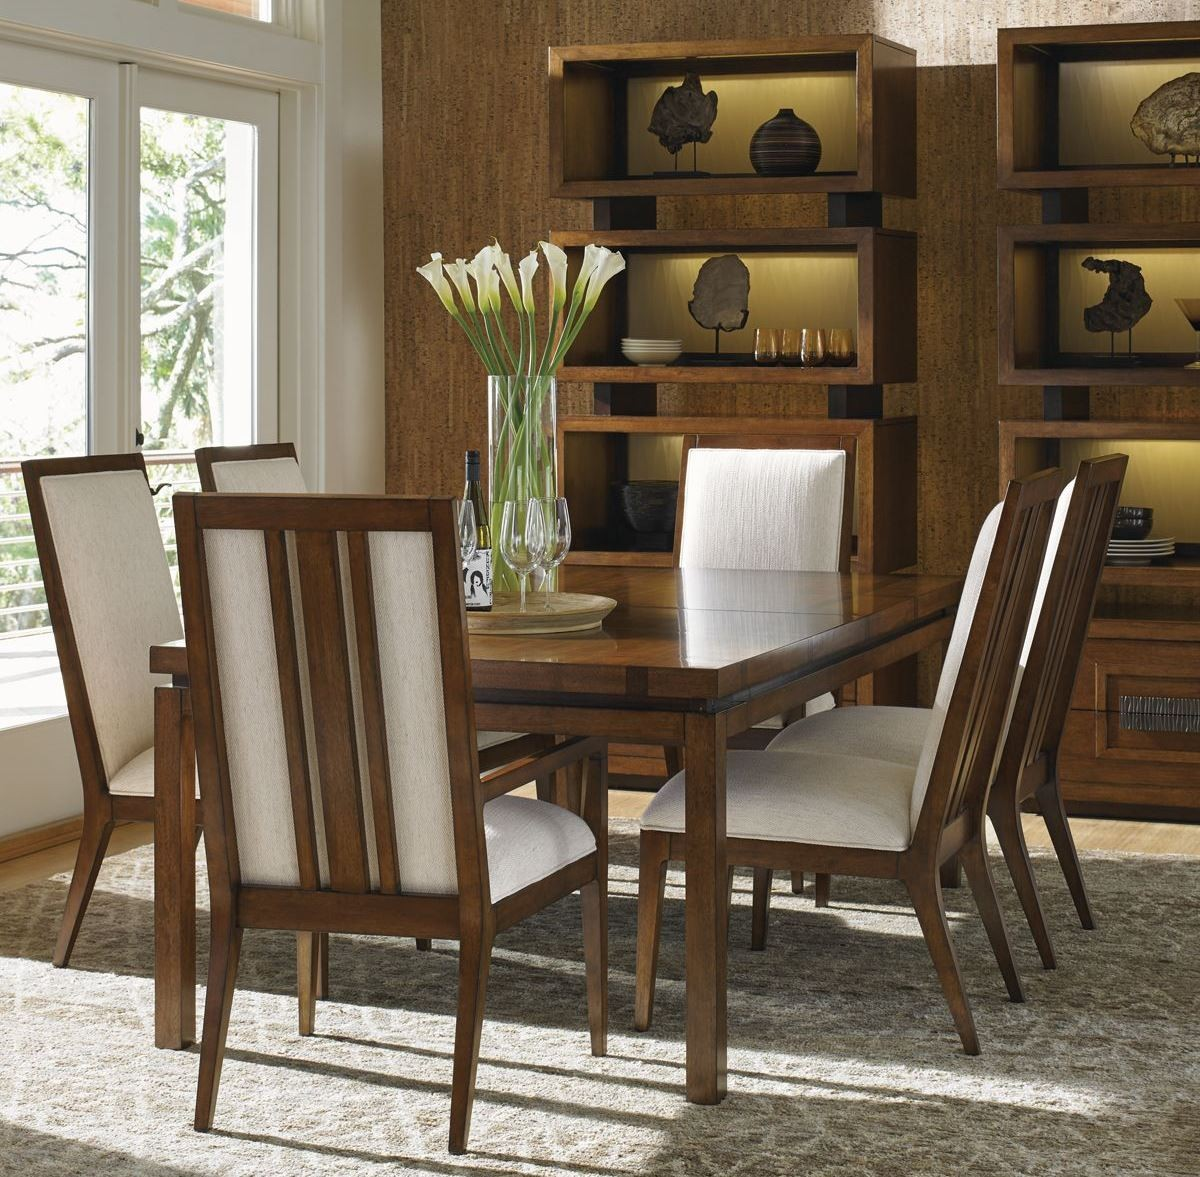 Islands Dining Room: Island Fusion Marquesa Rectangular Dining Room Set From